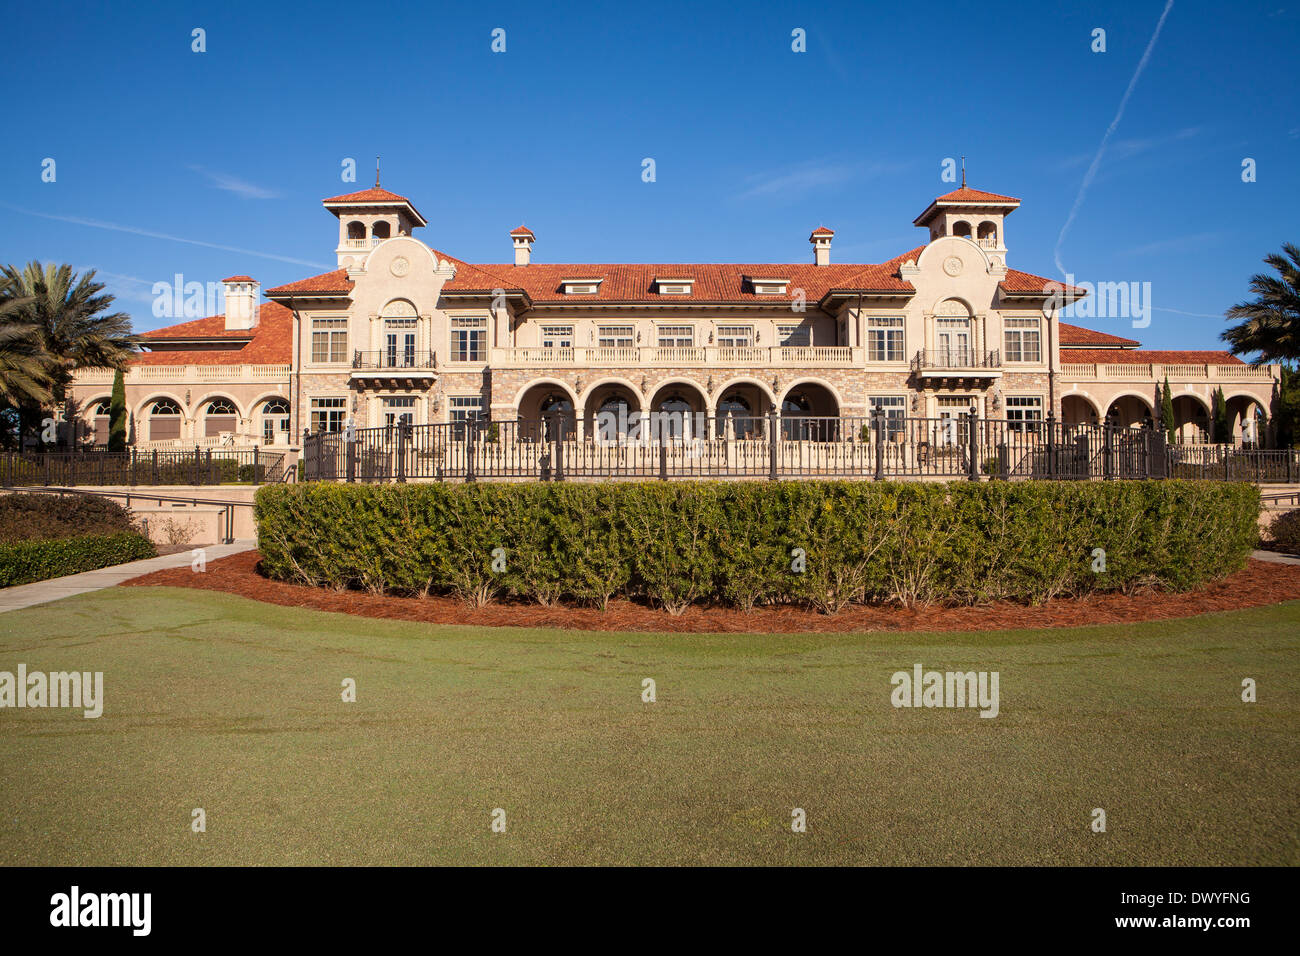 TPC at Sawgrass clubhouse is pictured in Ponte Vedra Beach, Florida - Stock Image